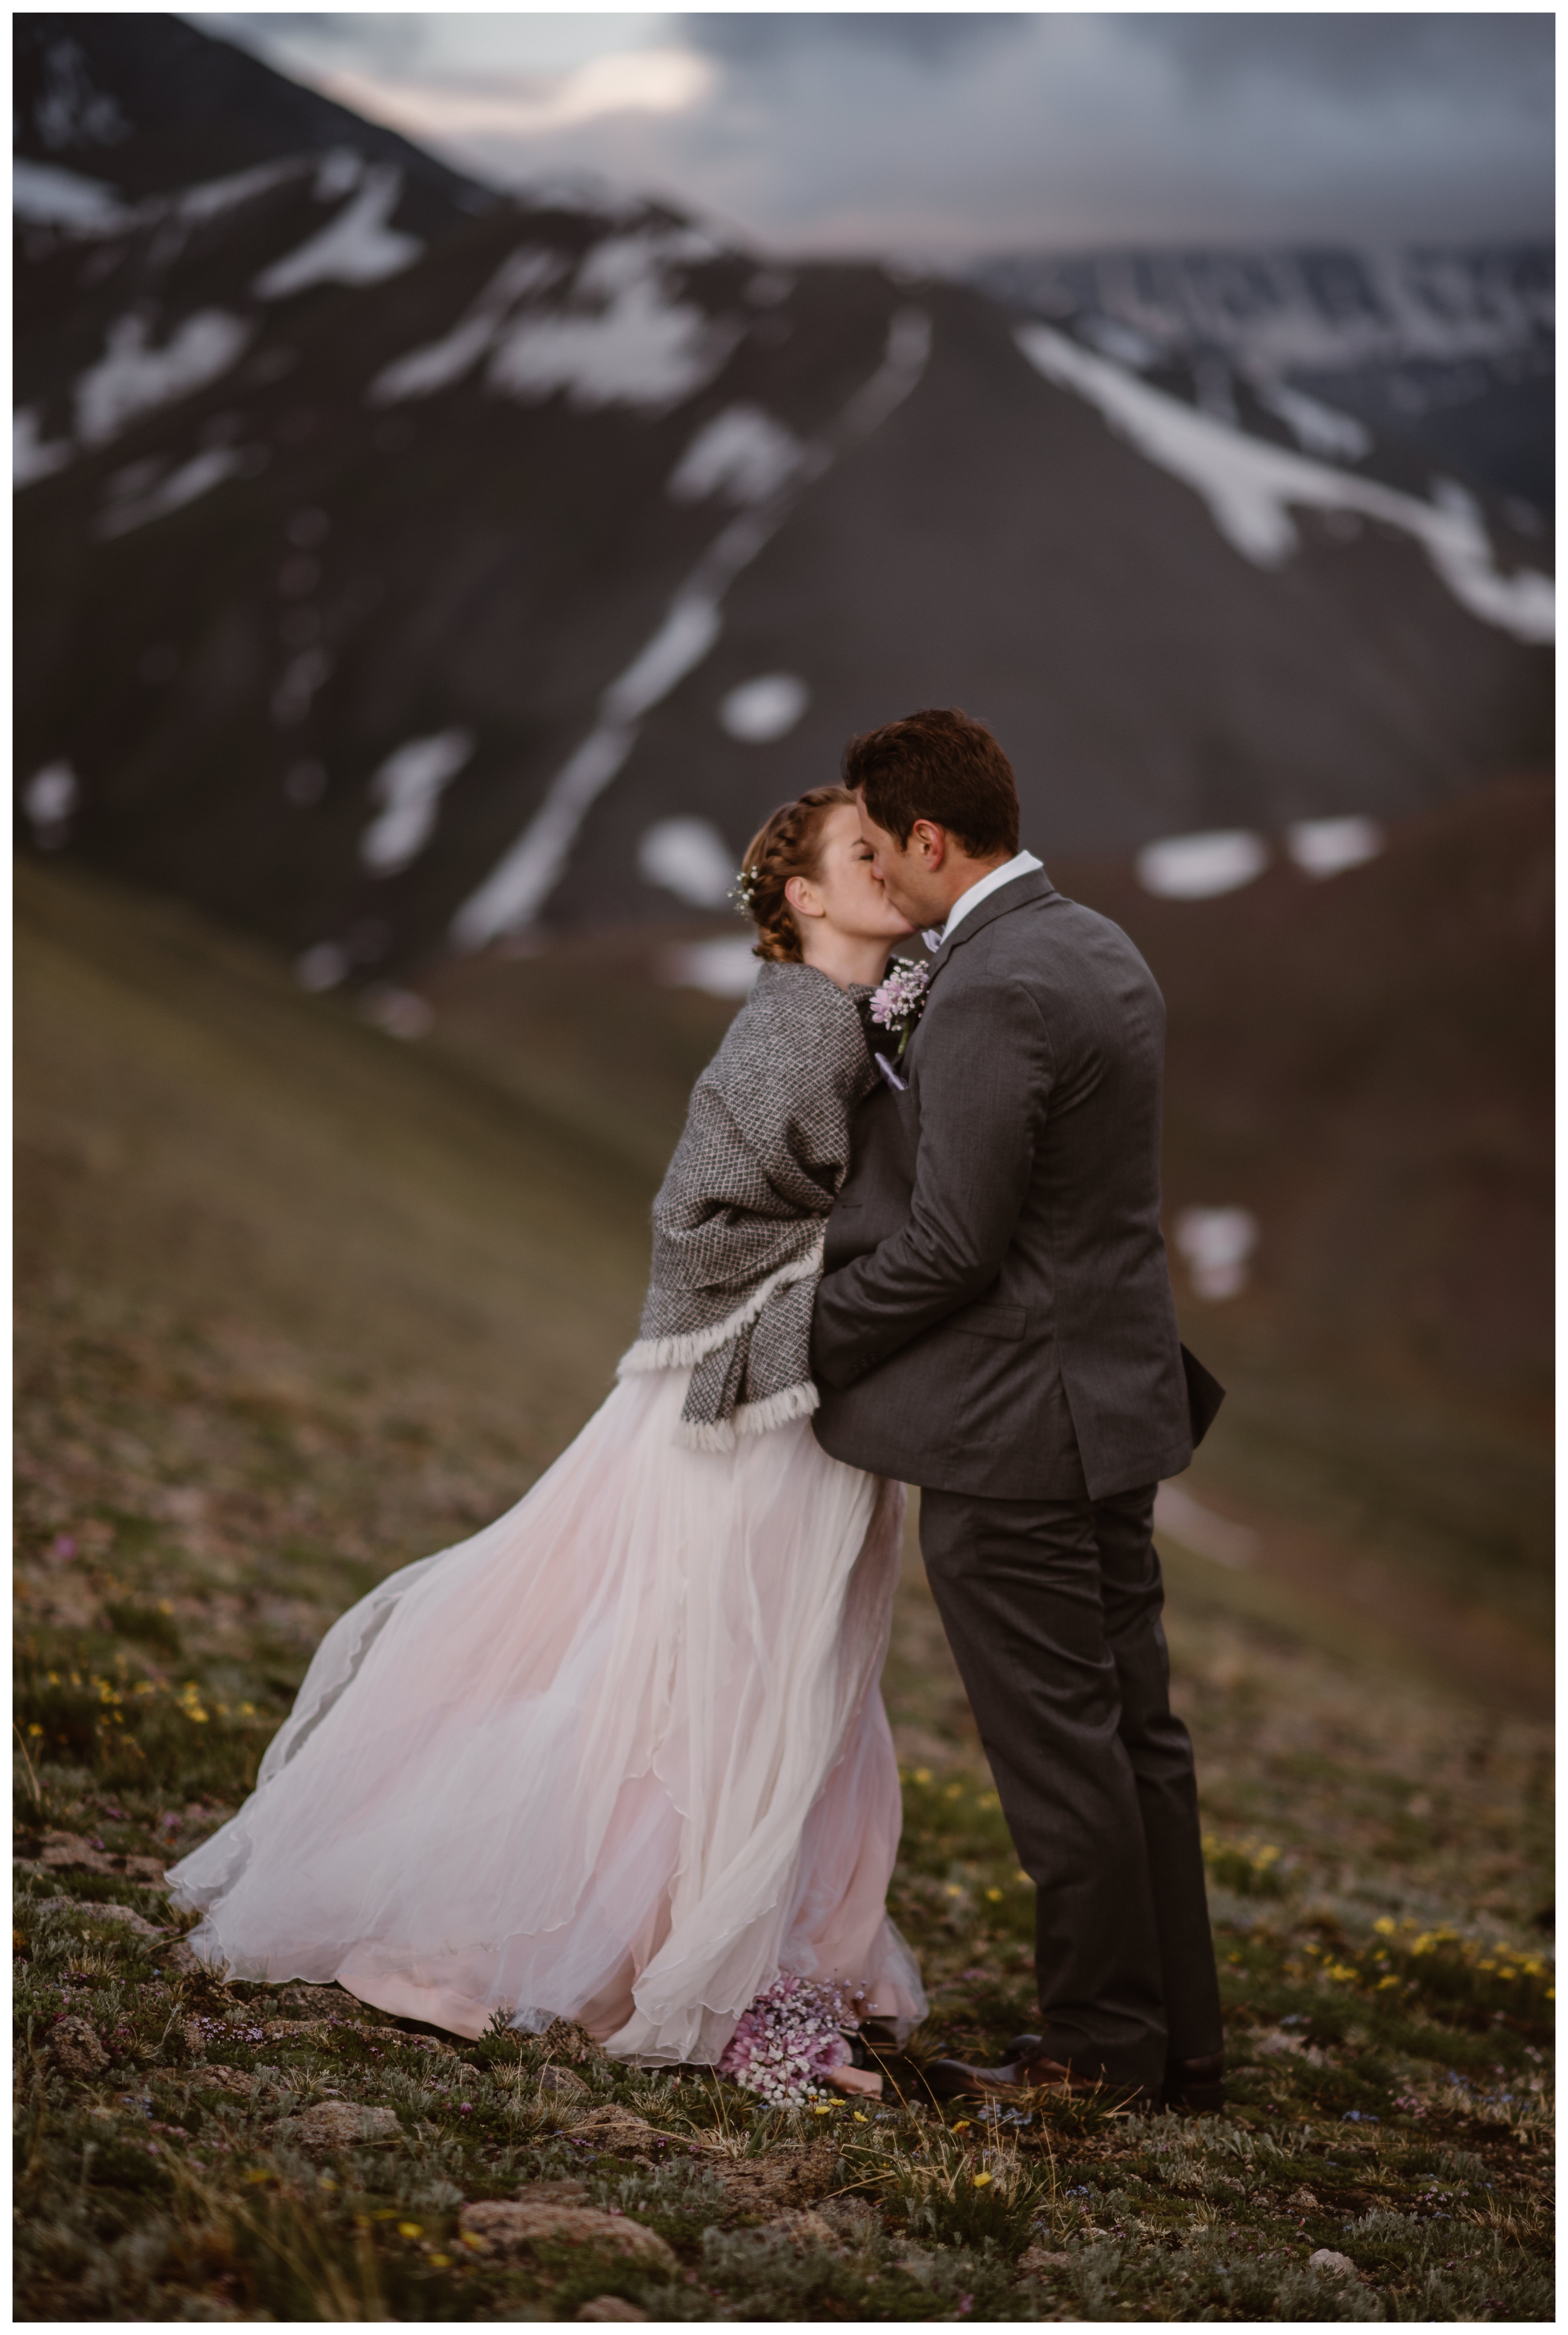 Marcela and Vasily share their first kiss as man and wife on the top of Independence Pass, following their intimate elopement ceremony. Photo by Maddie Mae, Adventure Instead.